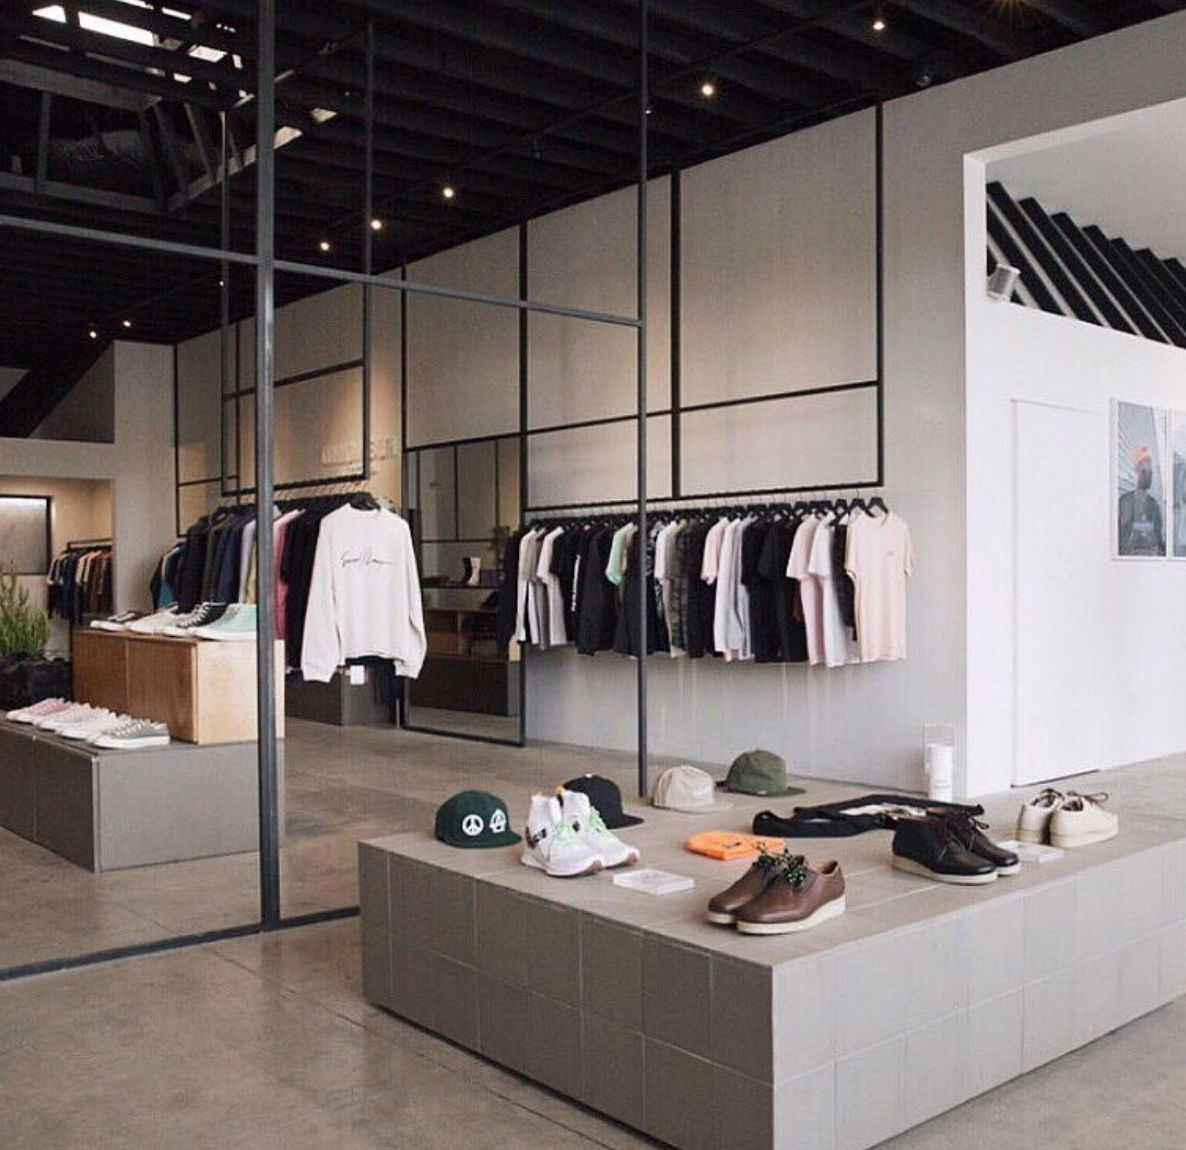 Commonwealth - An award-winning specialty boutique inspired by themes of community, rebellion, & success through struggle.https://commonwealth-ftgg.com/📍2008 E 7th St, Los Angeles, CA 90021